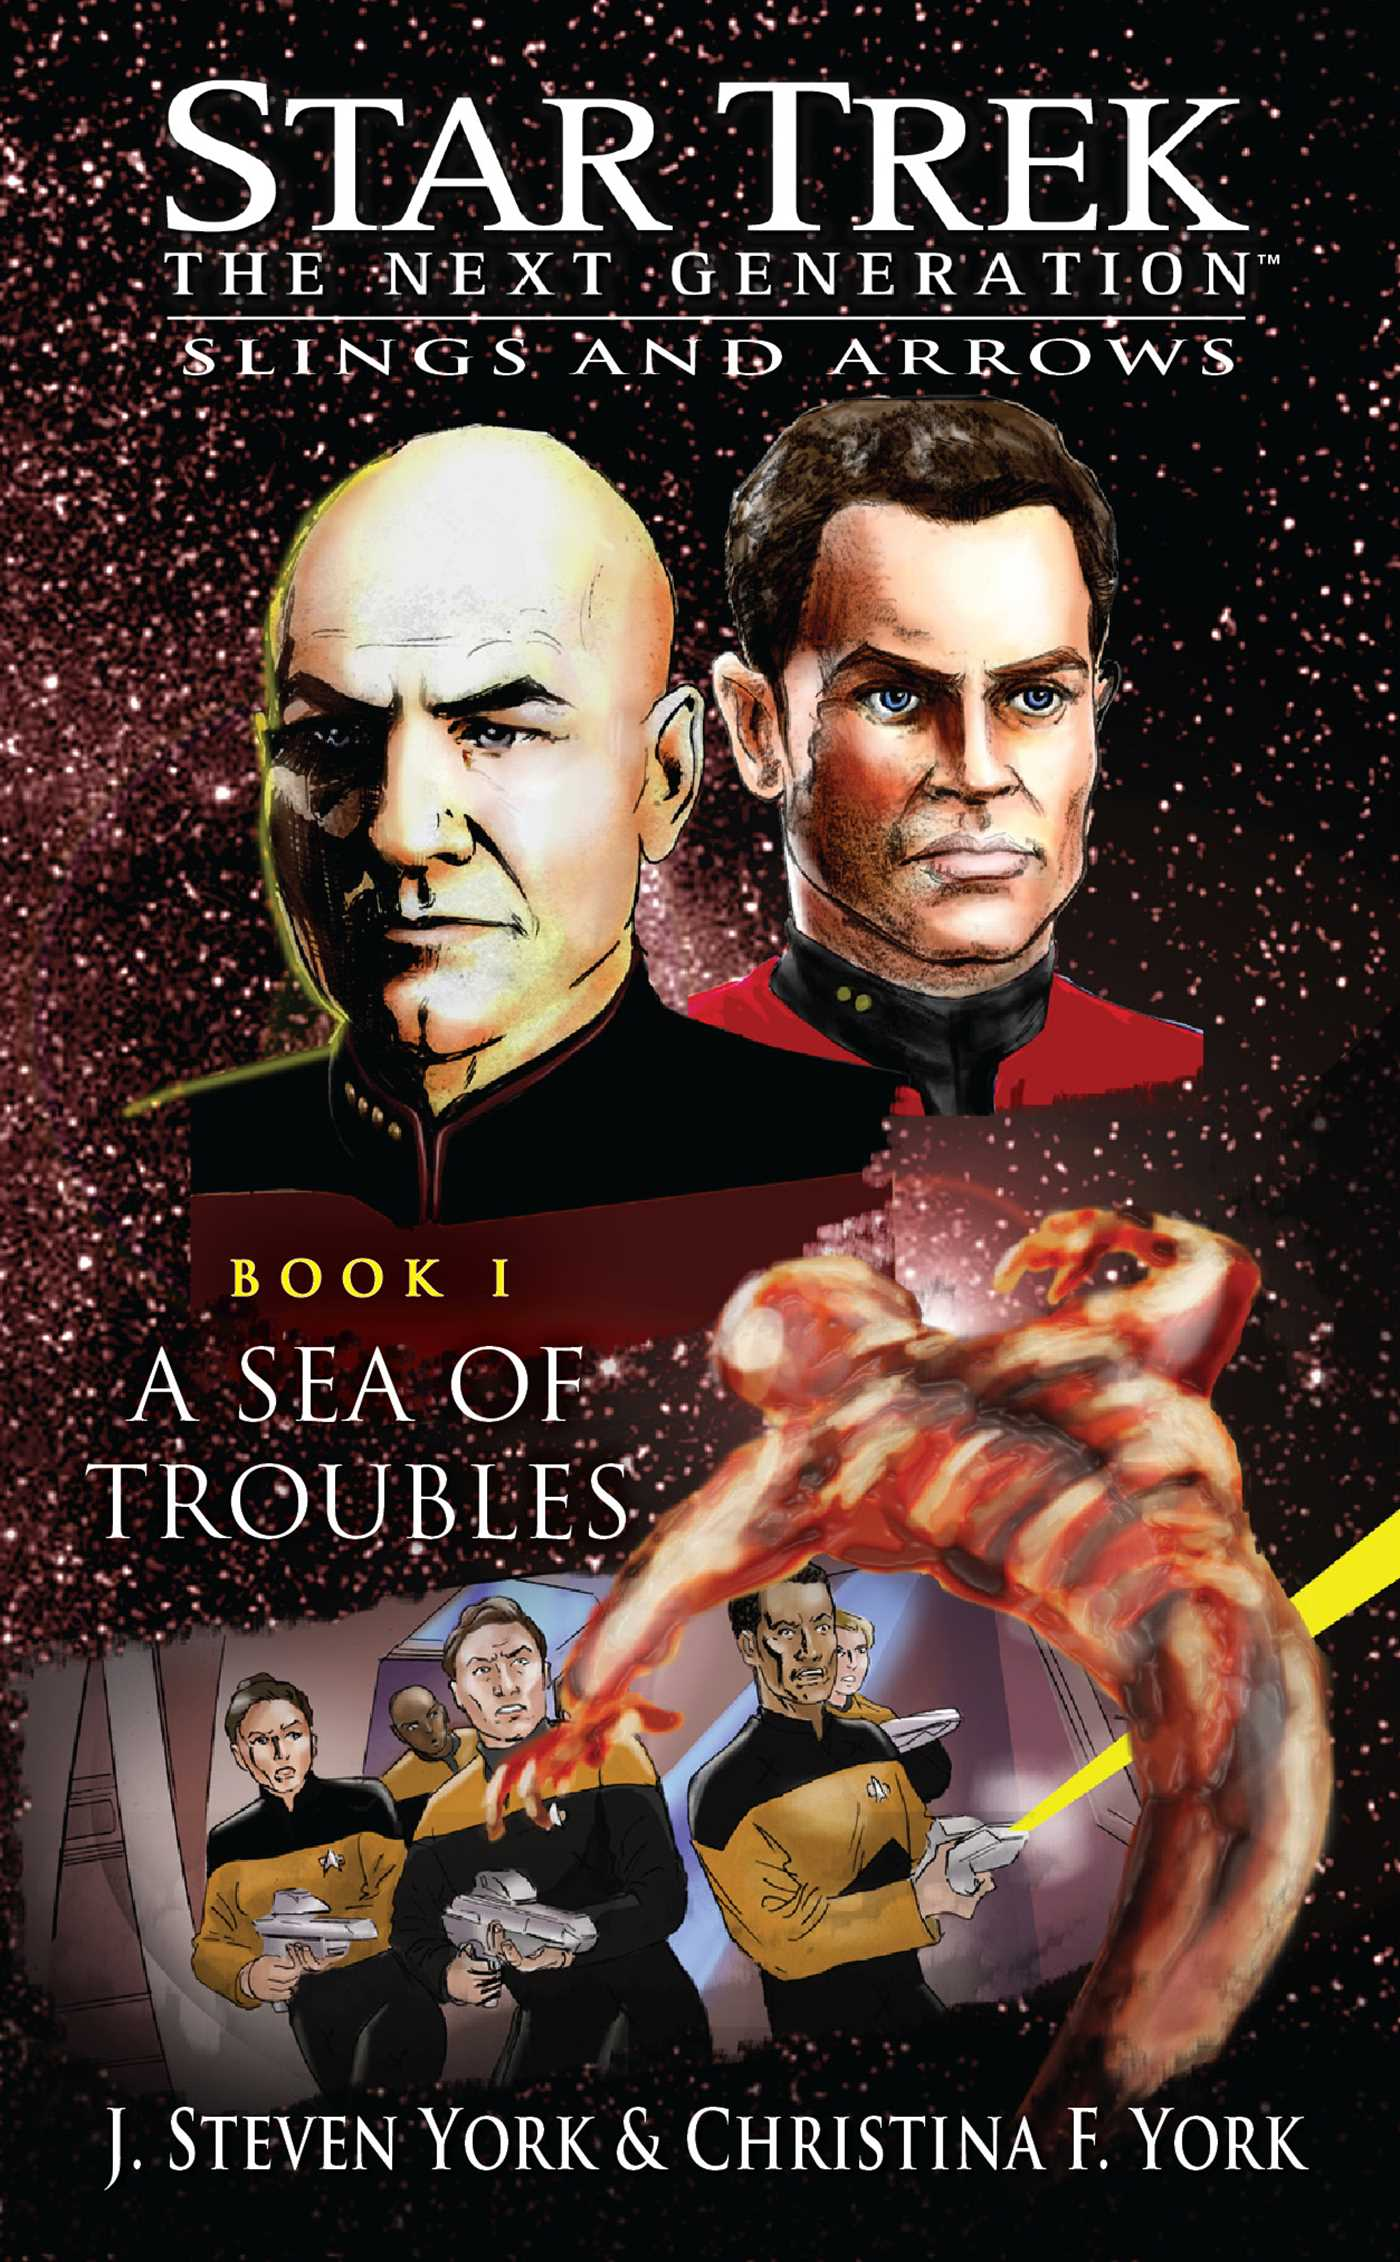 Star-trek-the-next-generation-a-sea-of-troubles-9781416550082_hr